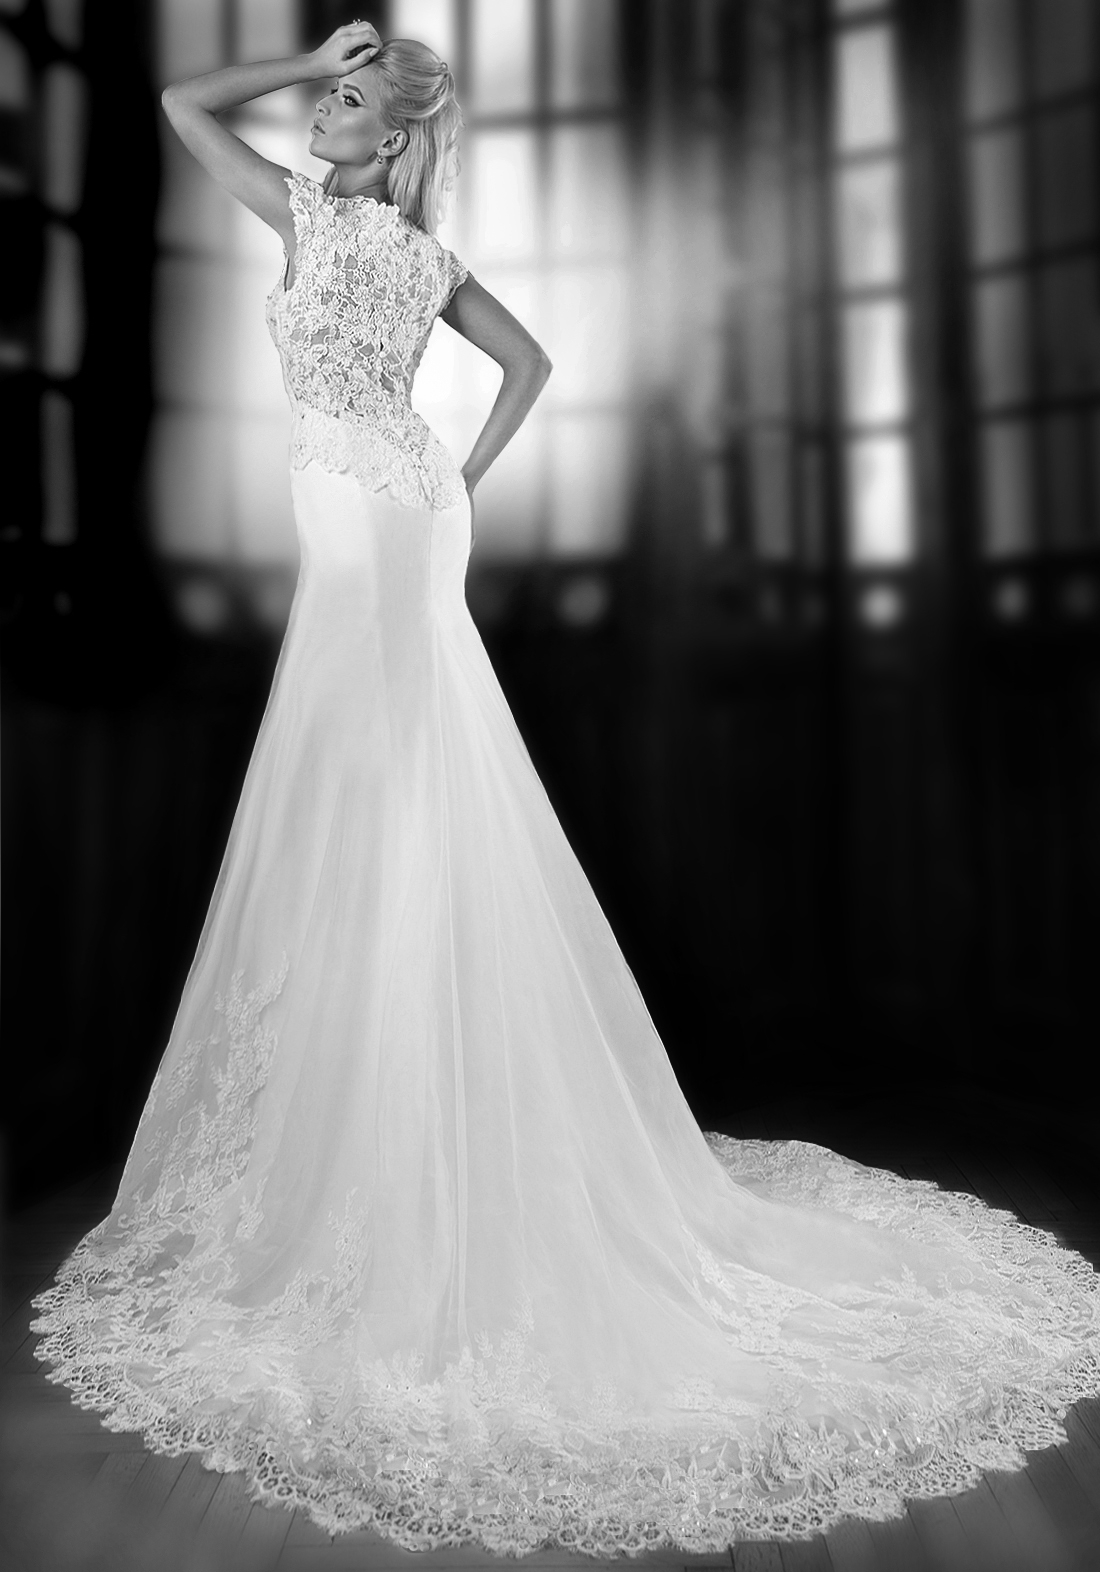 bien-savvy-wedding-dresses-2014-collection-18-01232014